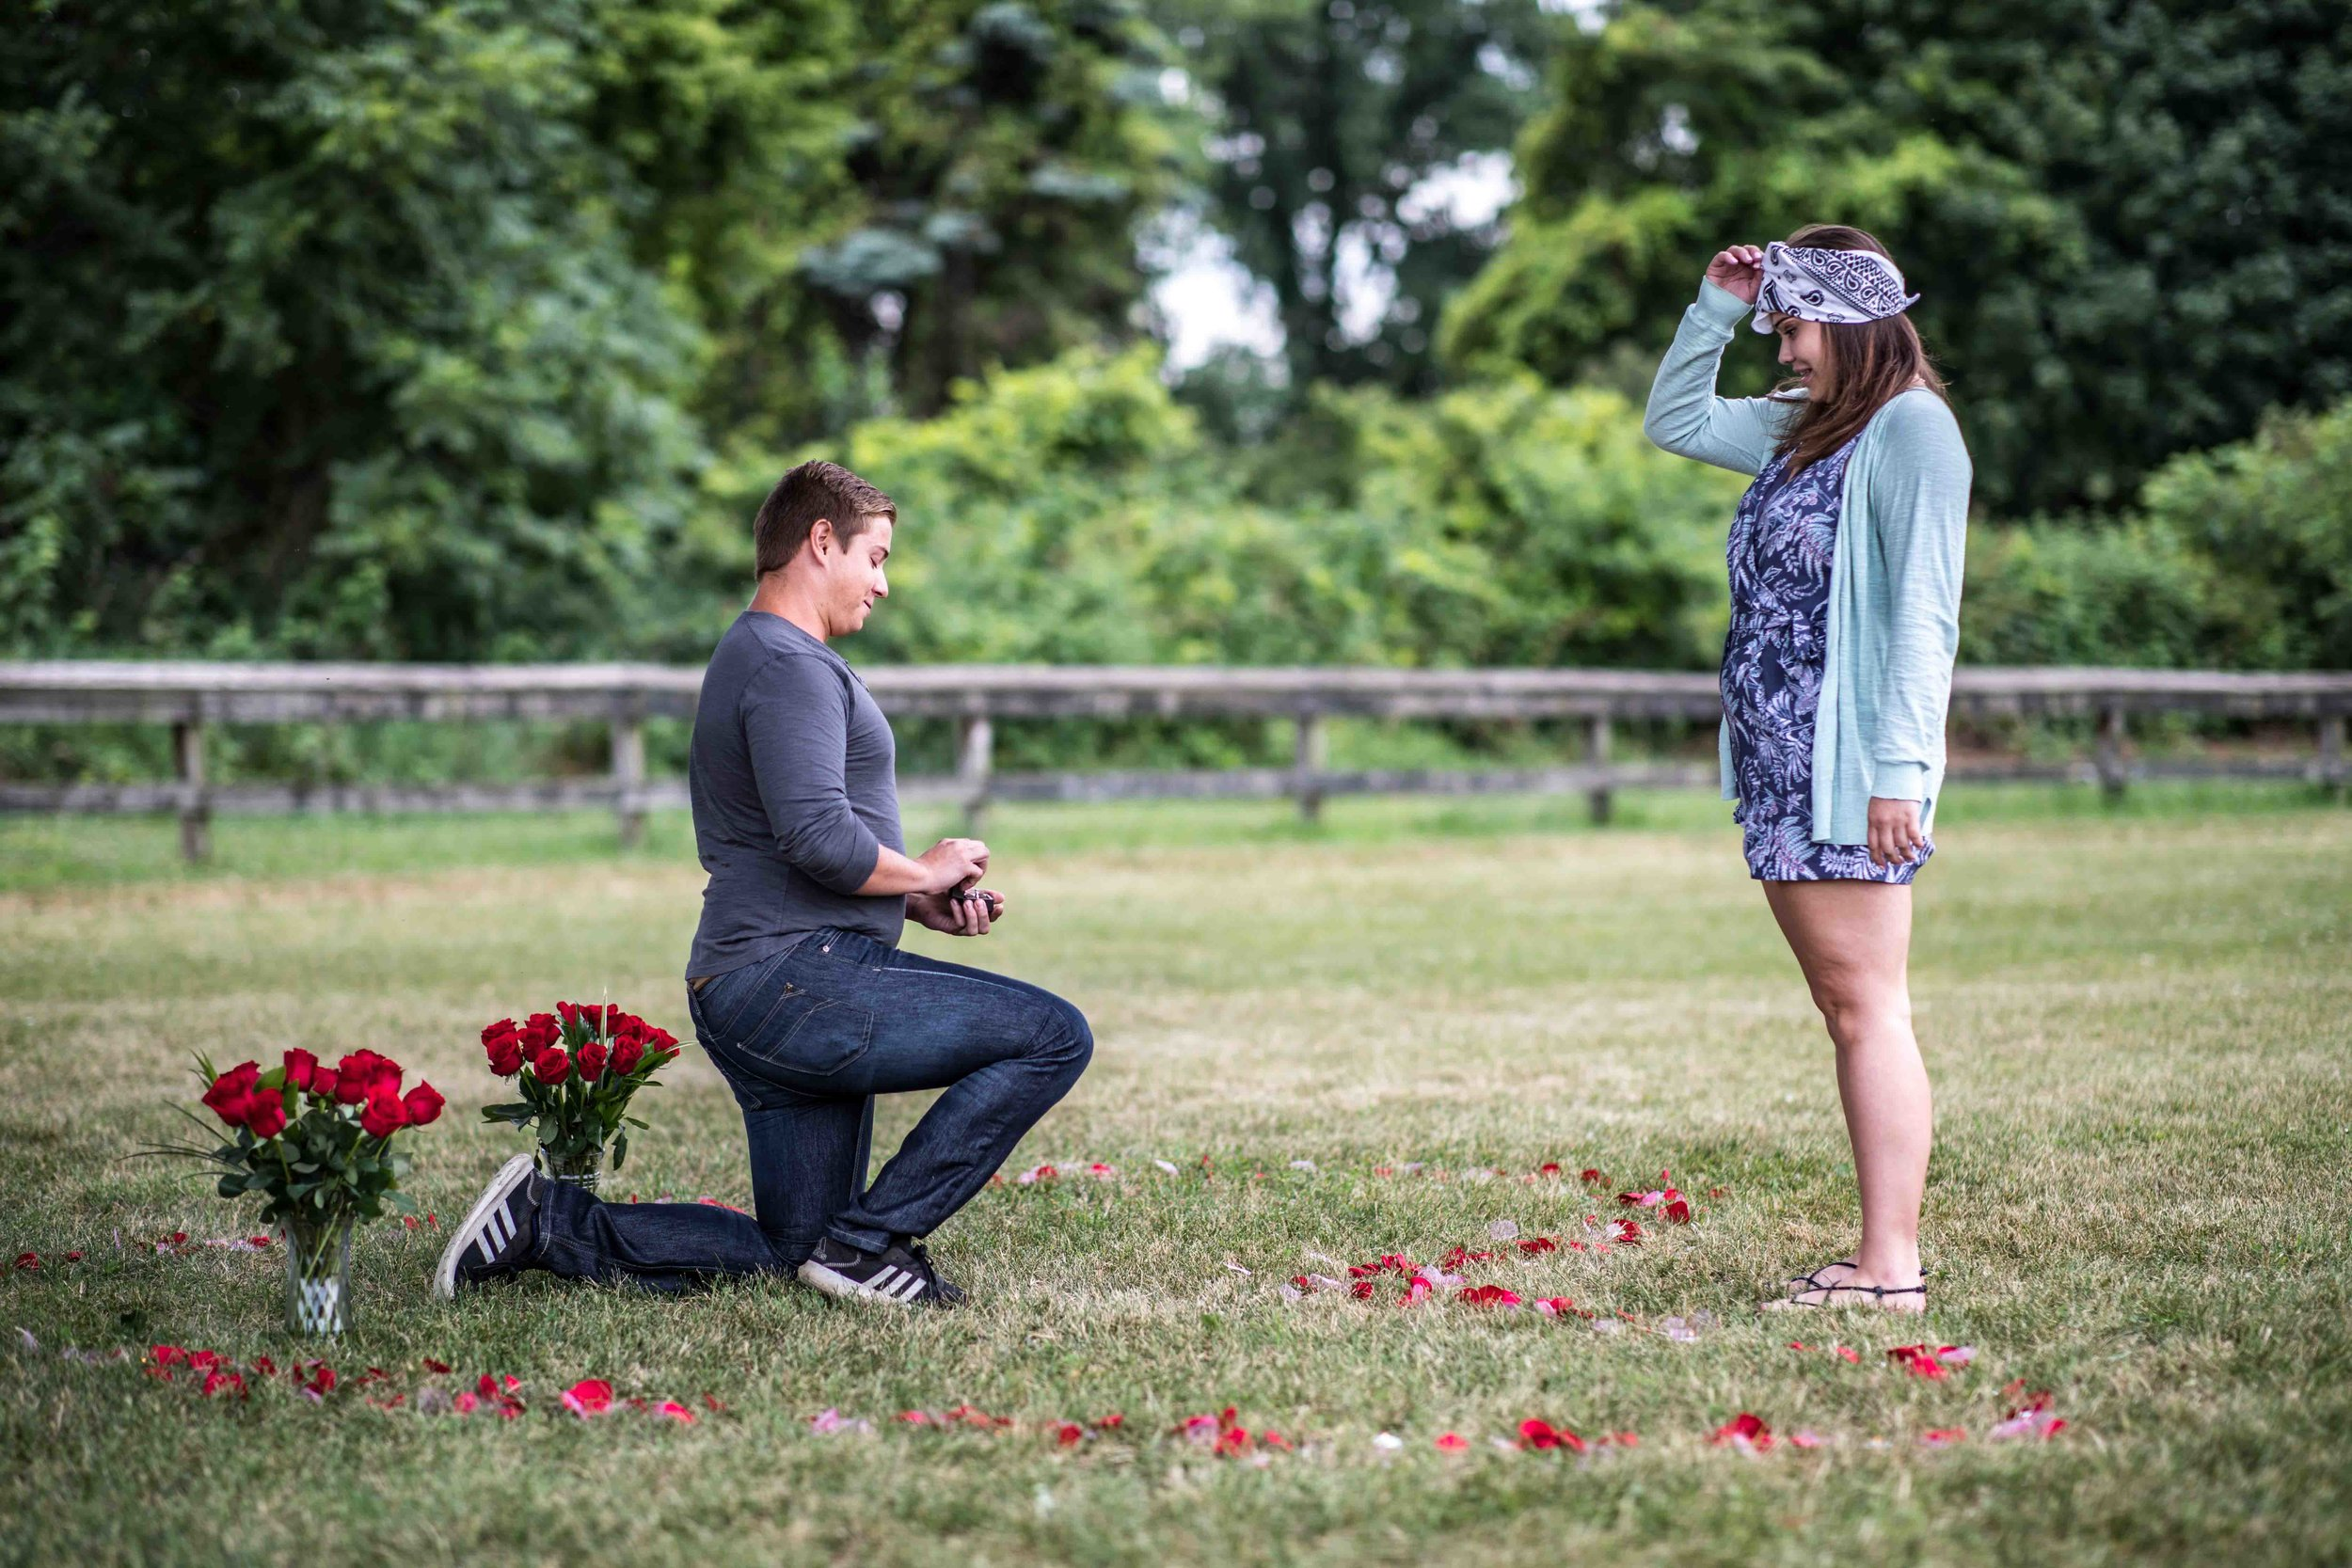 Girlfriend removes her blindfold to find her boyfriend proposing to her with flowers in the shape of a heart around them